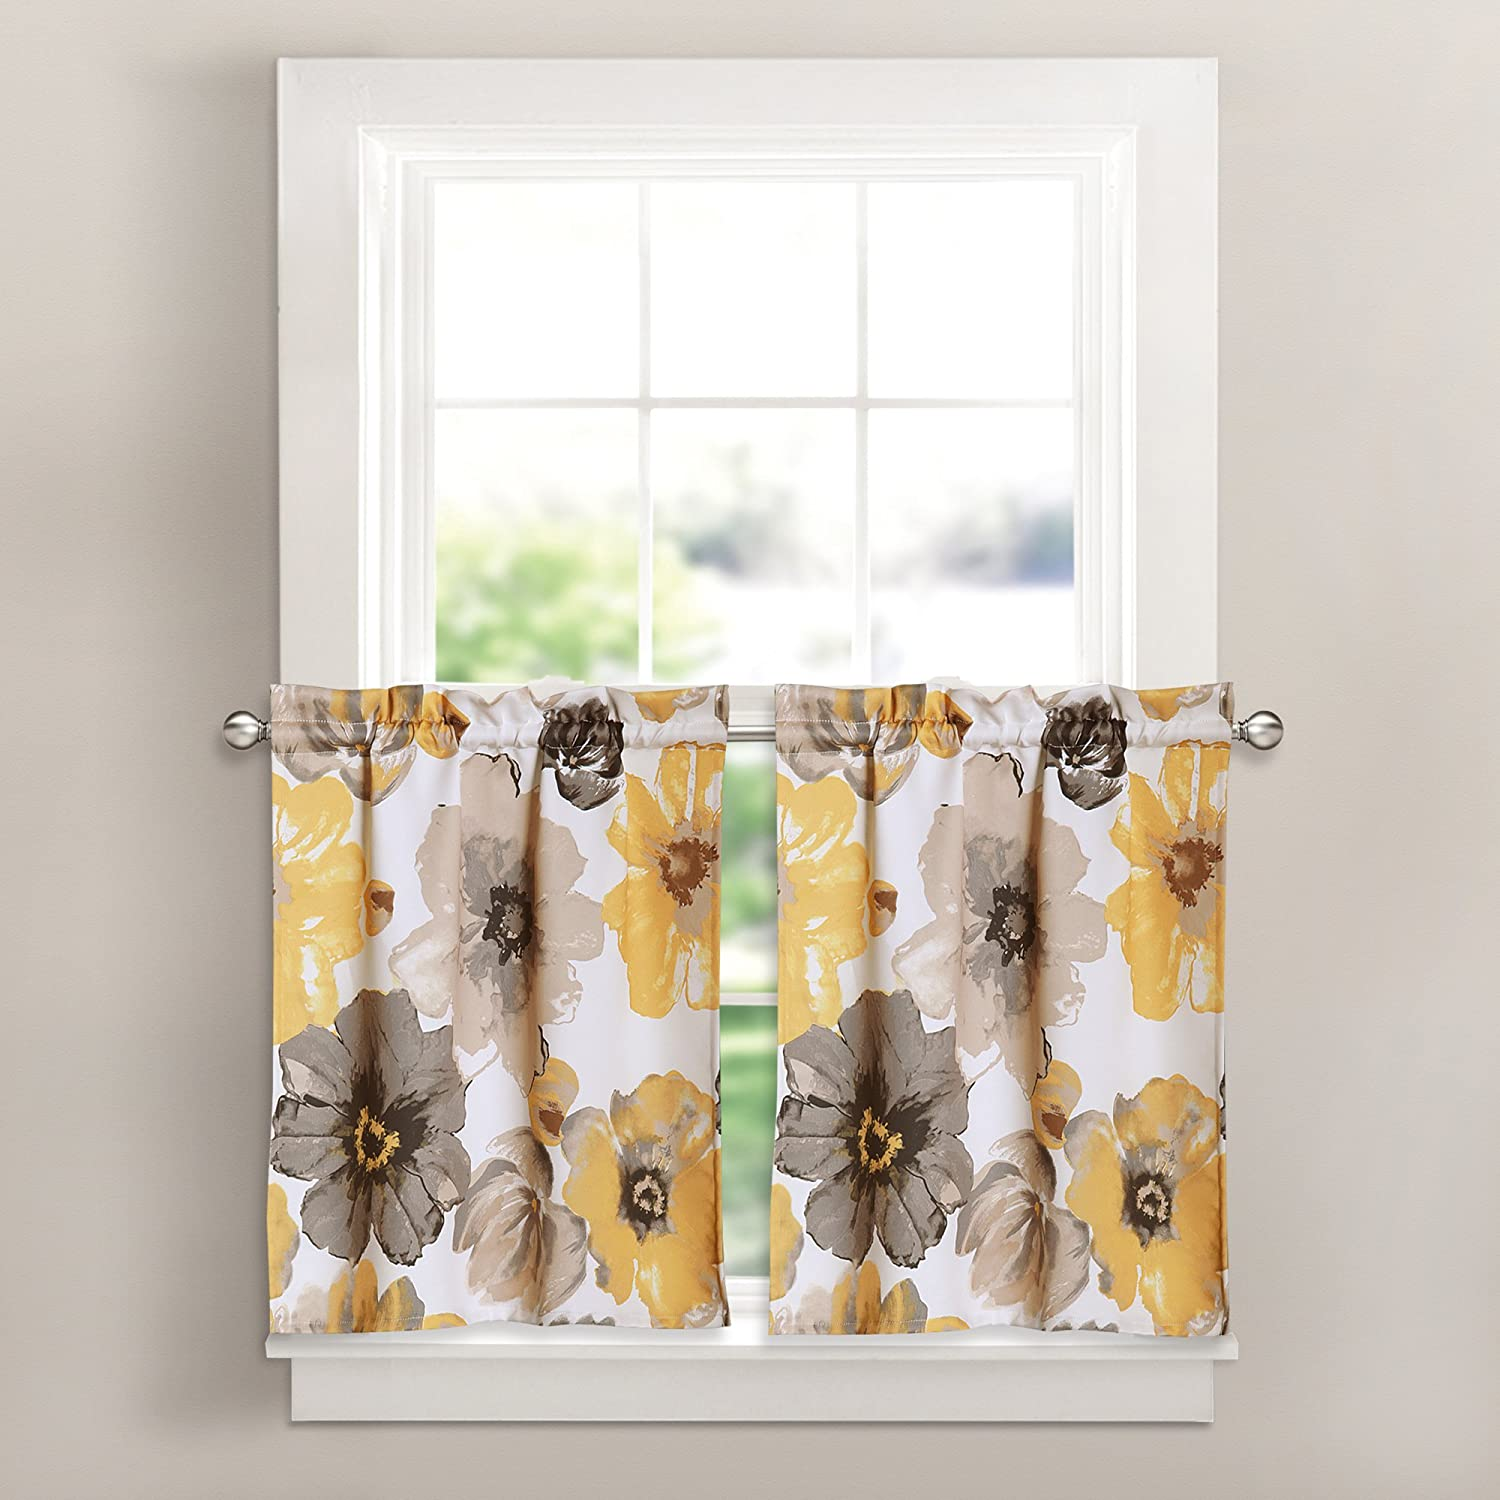 Floral Window Treatments Sale Ease Bedding With Style